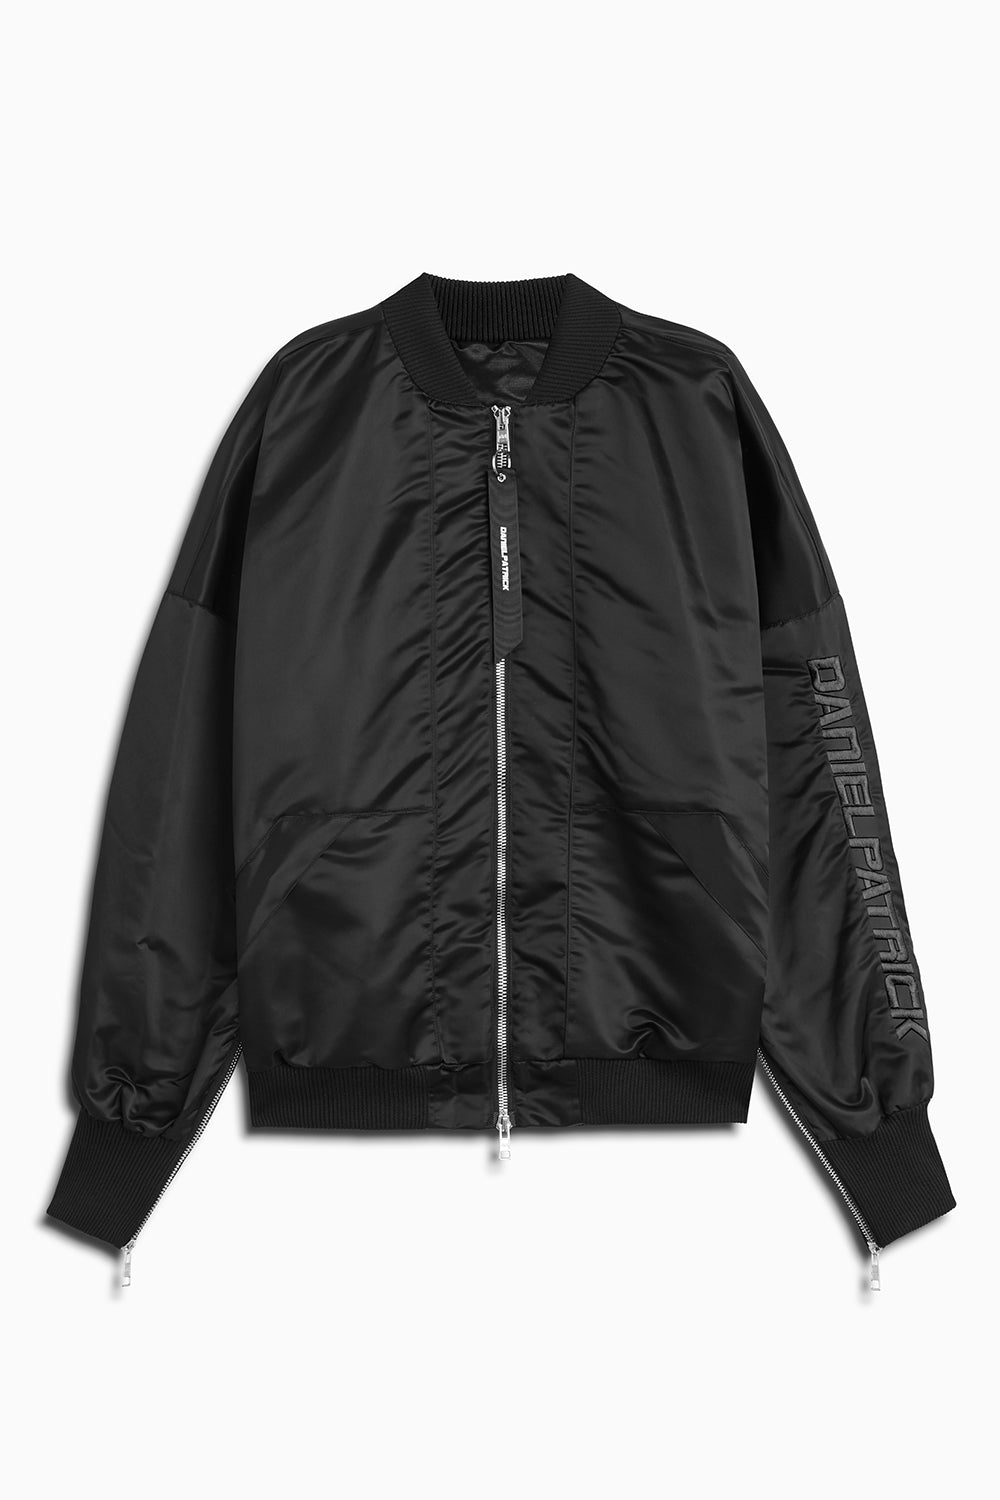 DP embroidered sleeve bomber in black/black by daniel patrick